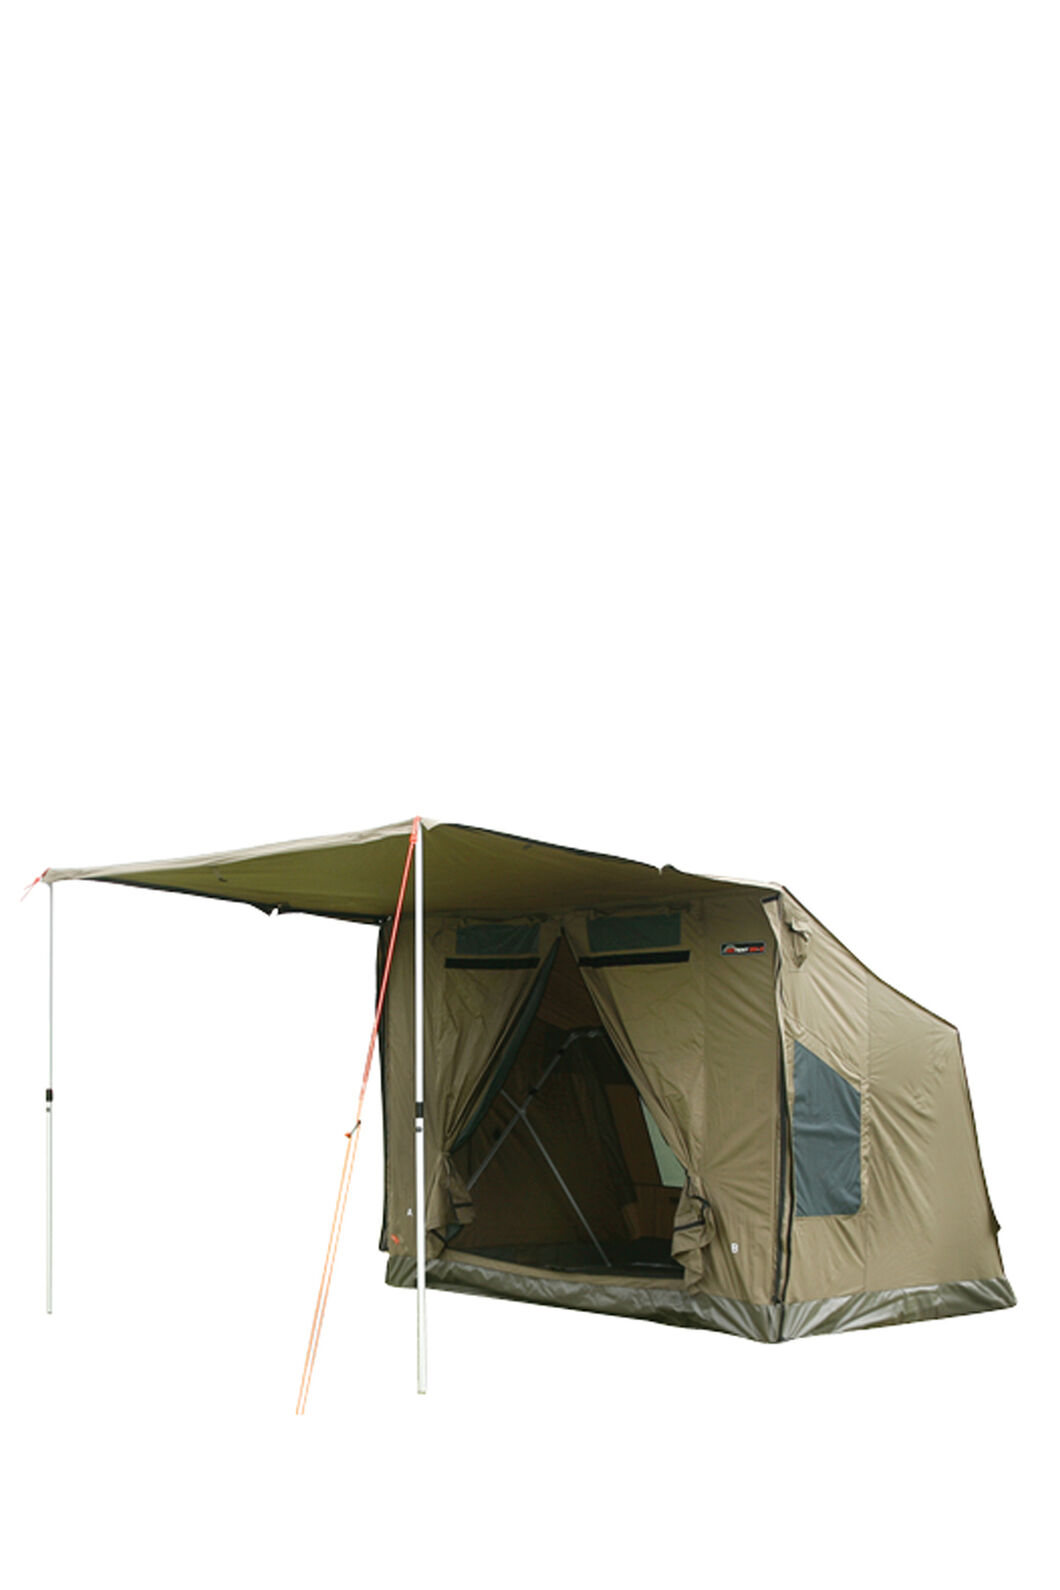 Oztent RV3 Instant Touring Tent, None, hi-res